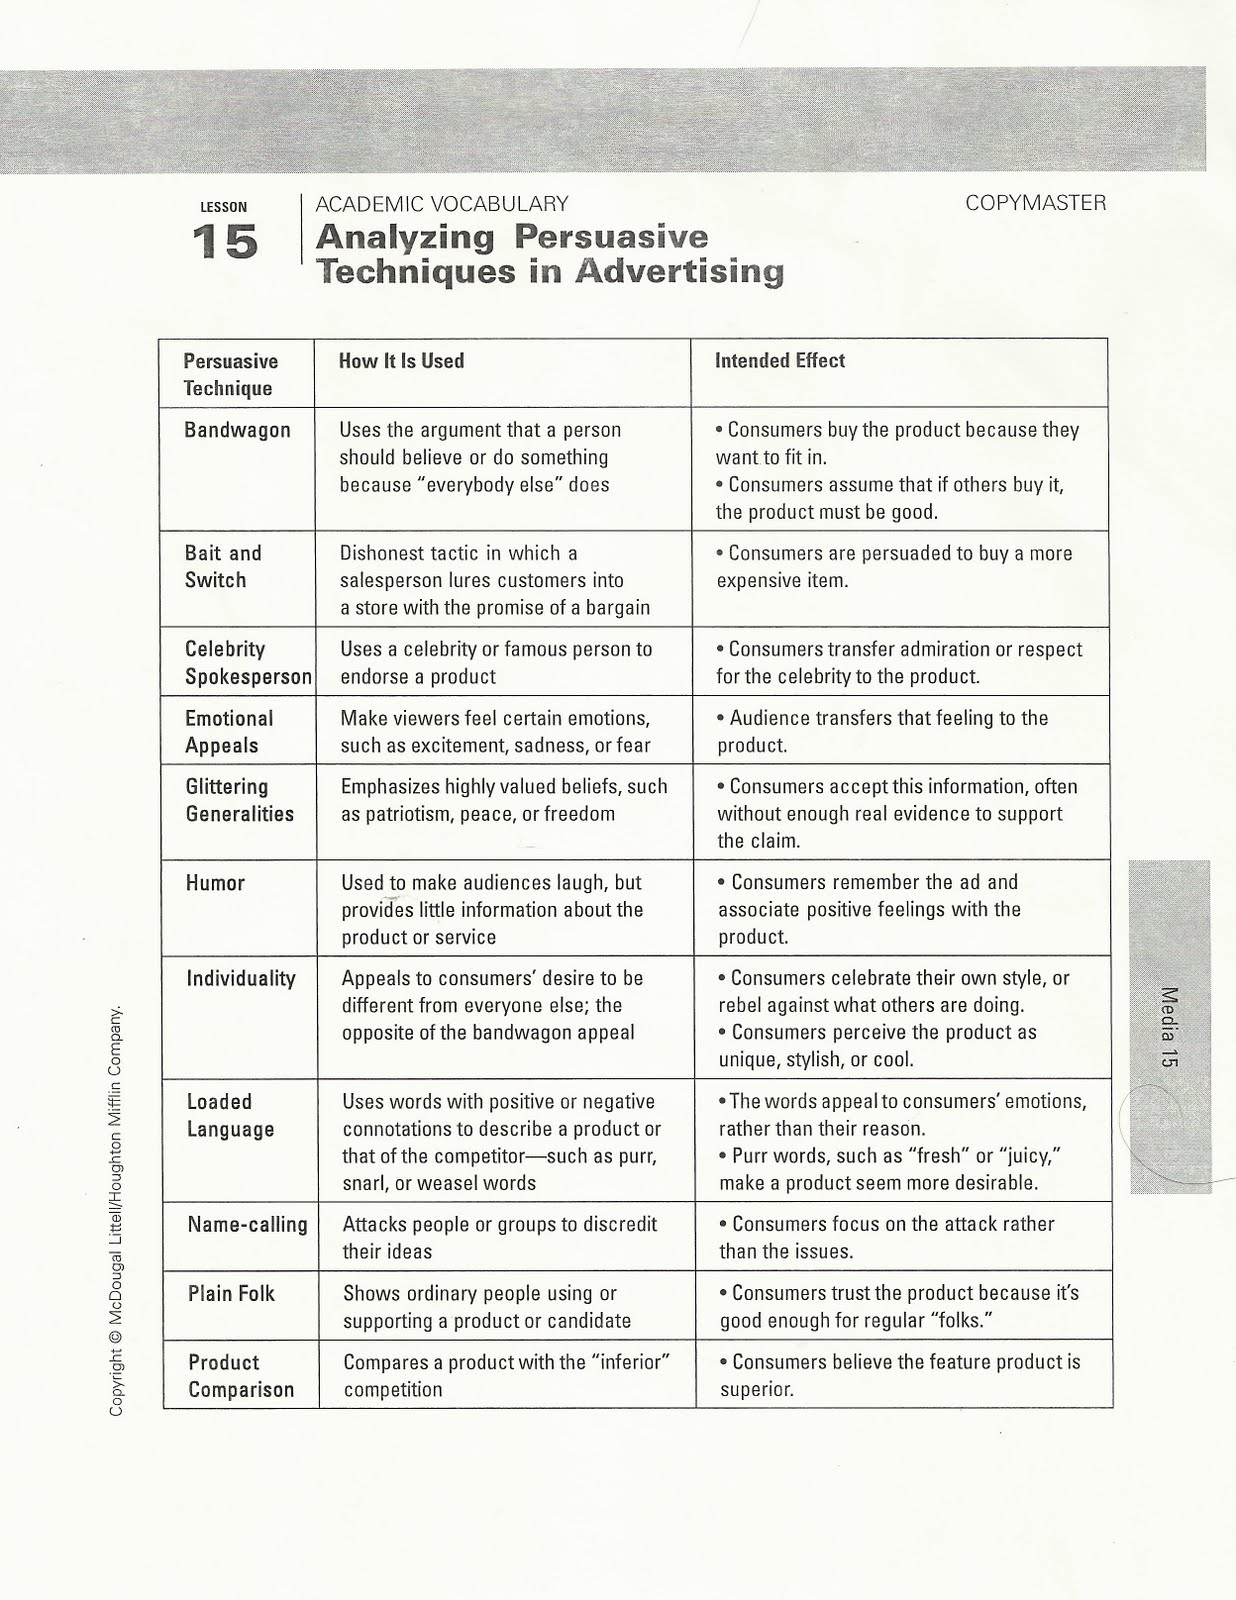 Printables Persuasive Techniques Worksheets persuasive techniques worksheets syndeomedia worksheet vintagegrn